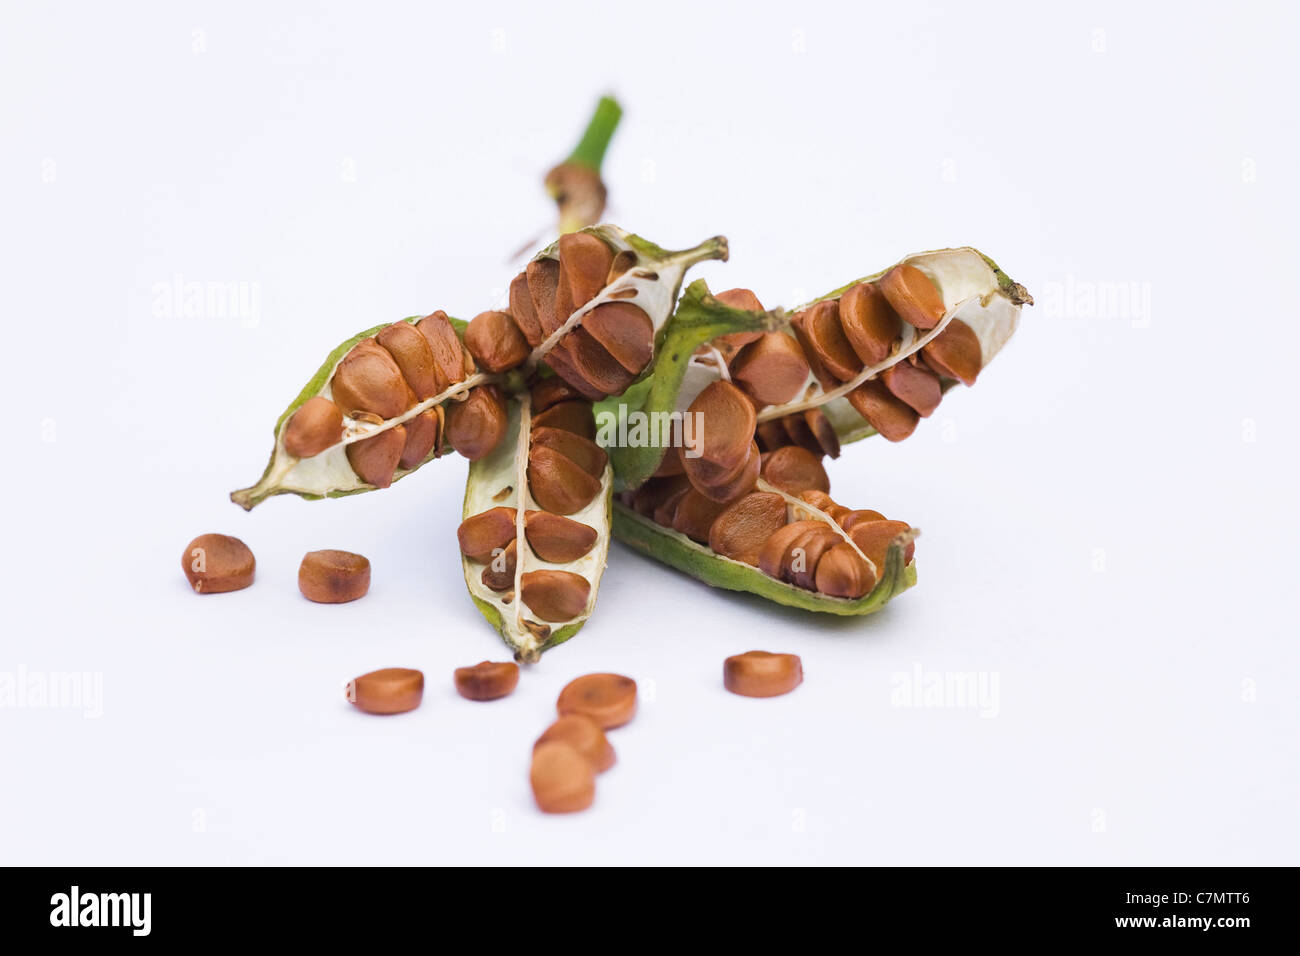 Iris foetidissima. Ripe seeds spilling from a seed pod on a white background. - Stock Image